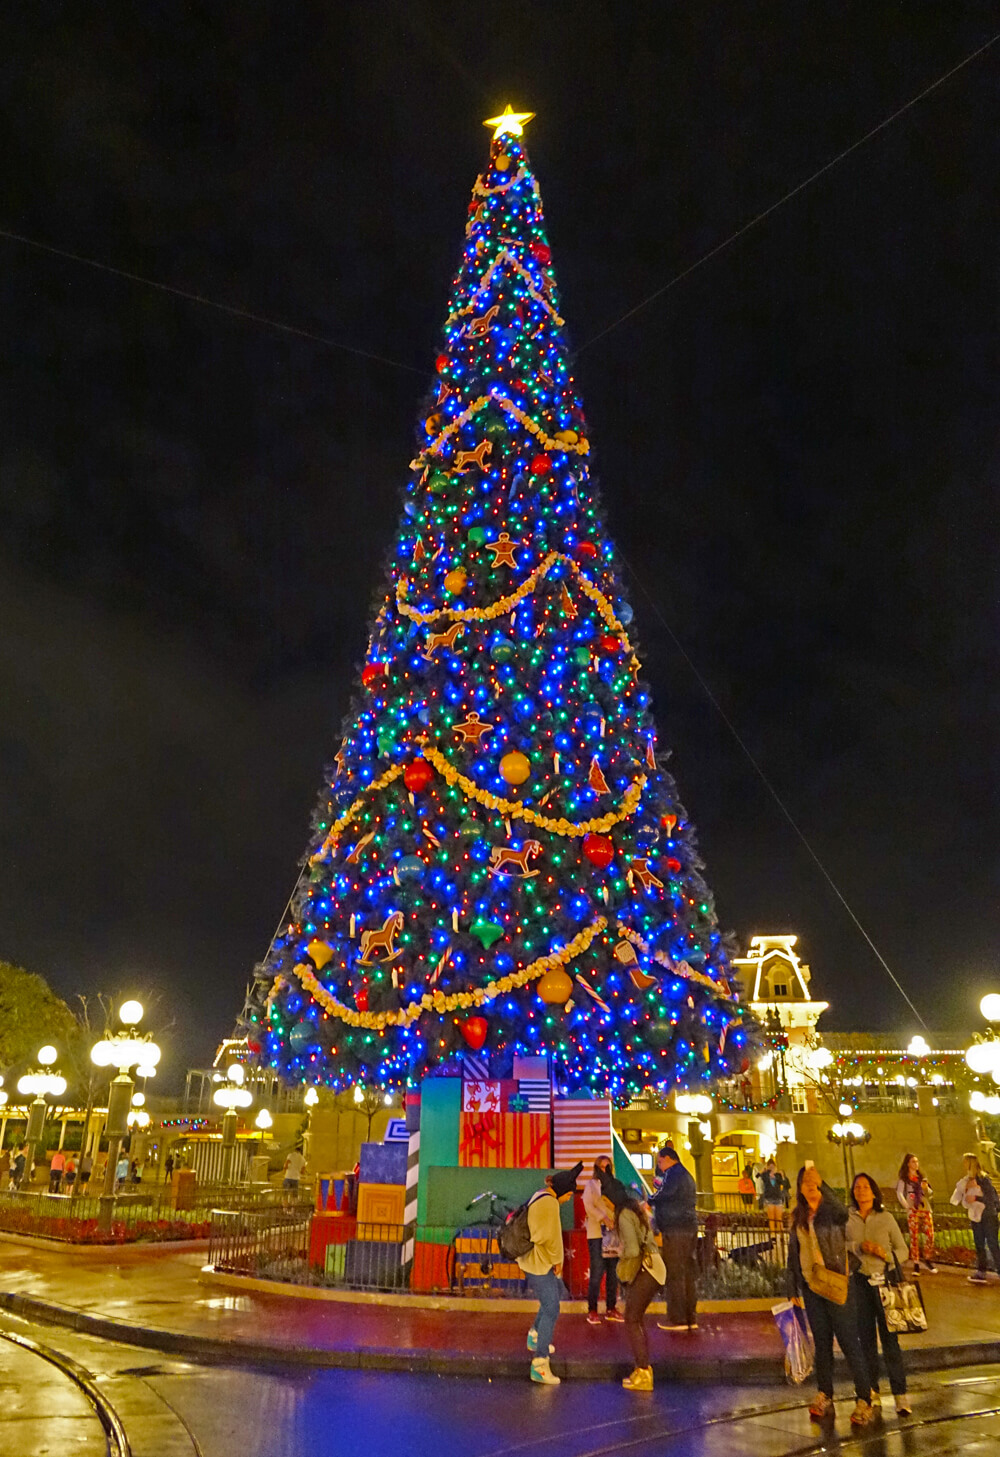 disney world holiday events 2018 magic kingdom tree decorating is